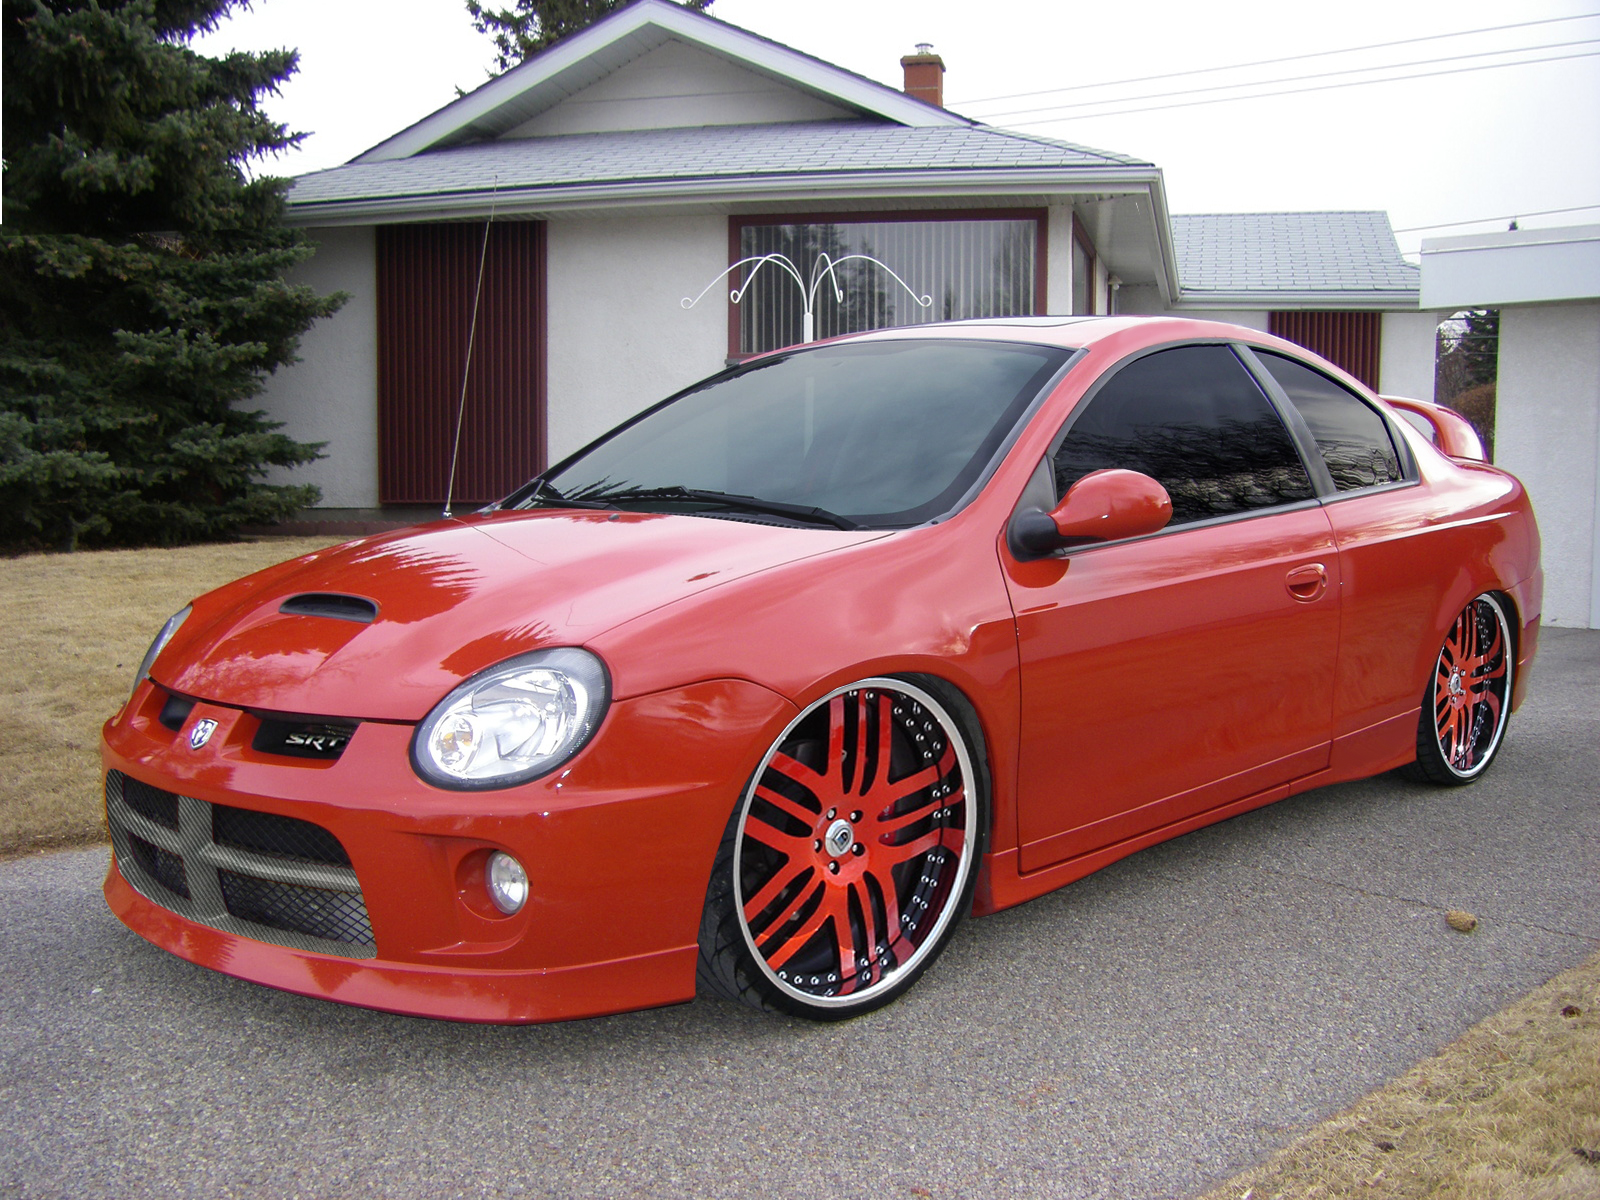 dodge neon srt4 photos news reviews specs car listings. Black Bedroom Furniture Sets. Home Design Ideas